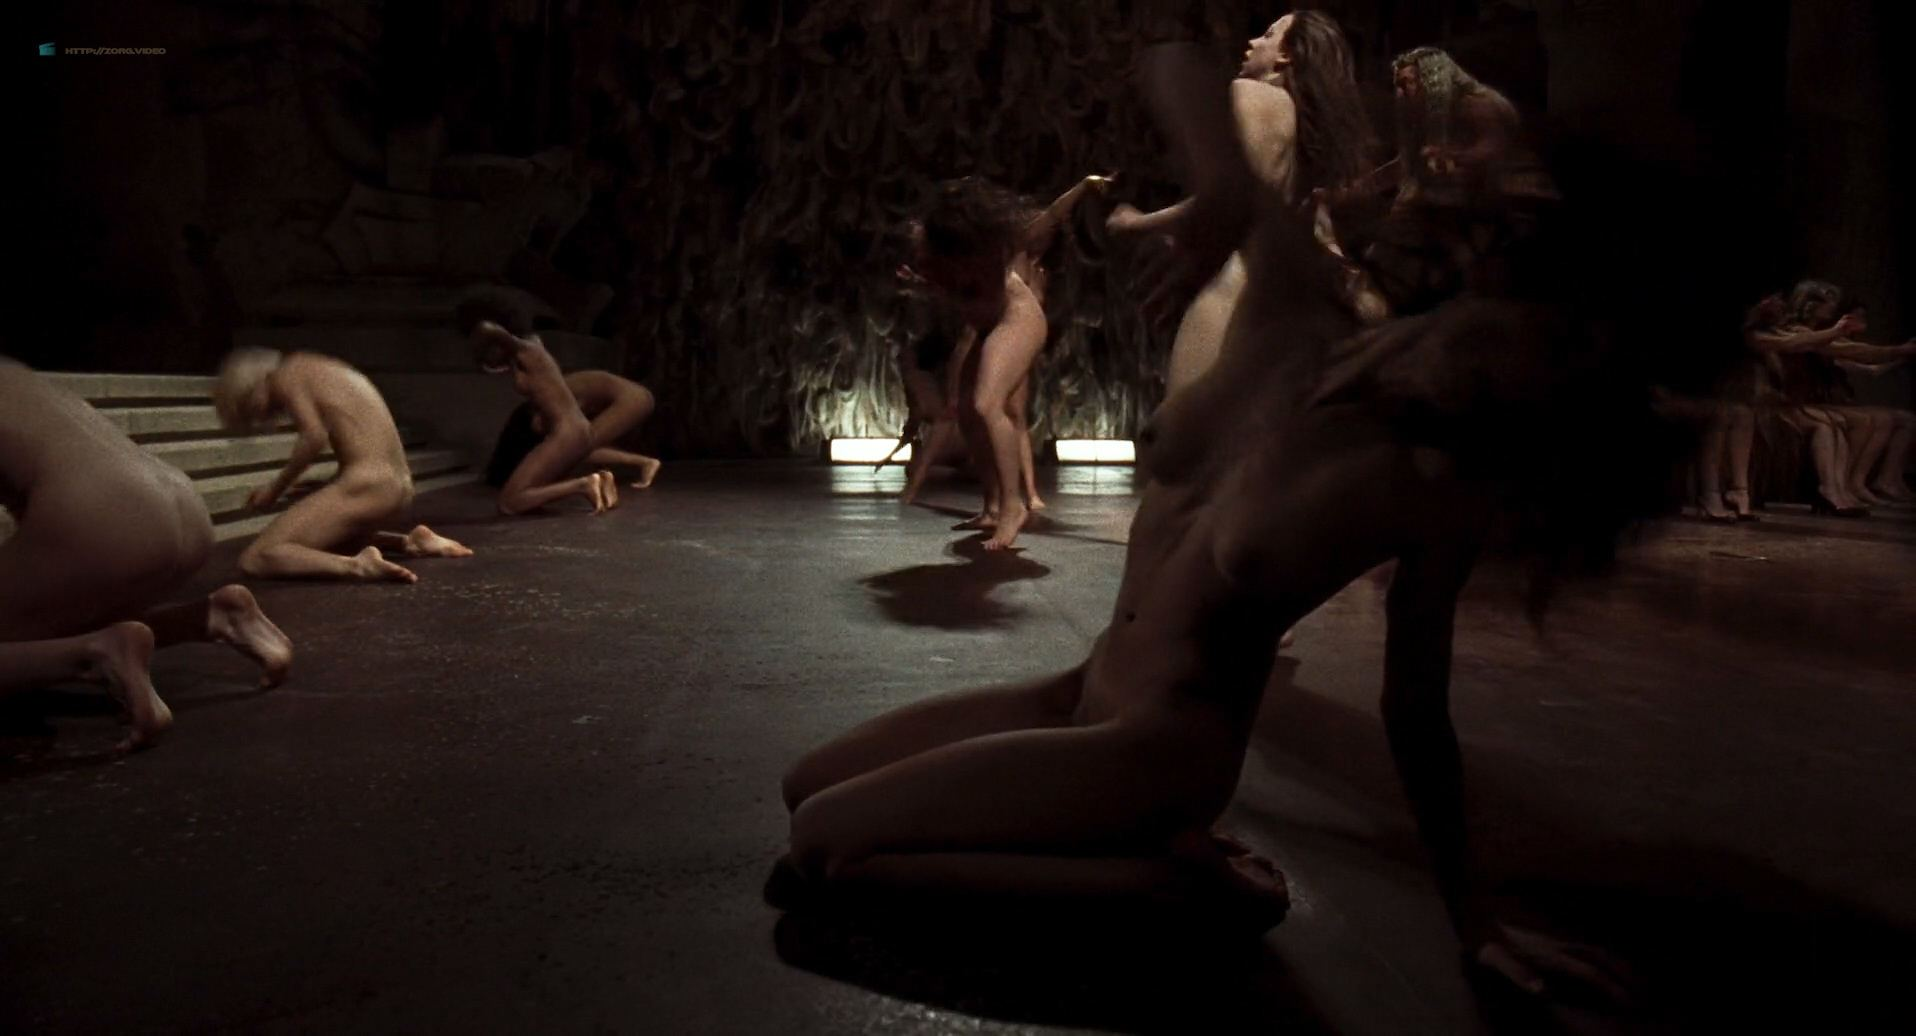 0013033402464_05_Dakota-Johnson-hot-c-true-Mia-Goth-nude-full-frontal-others-nude-too-Suspiria-2018-HD-1080p-12.jpg